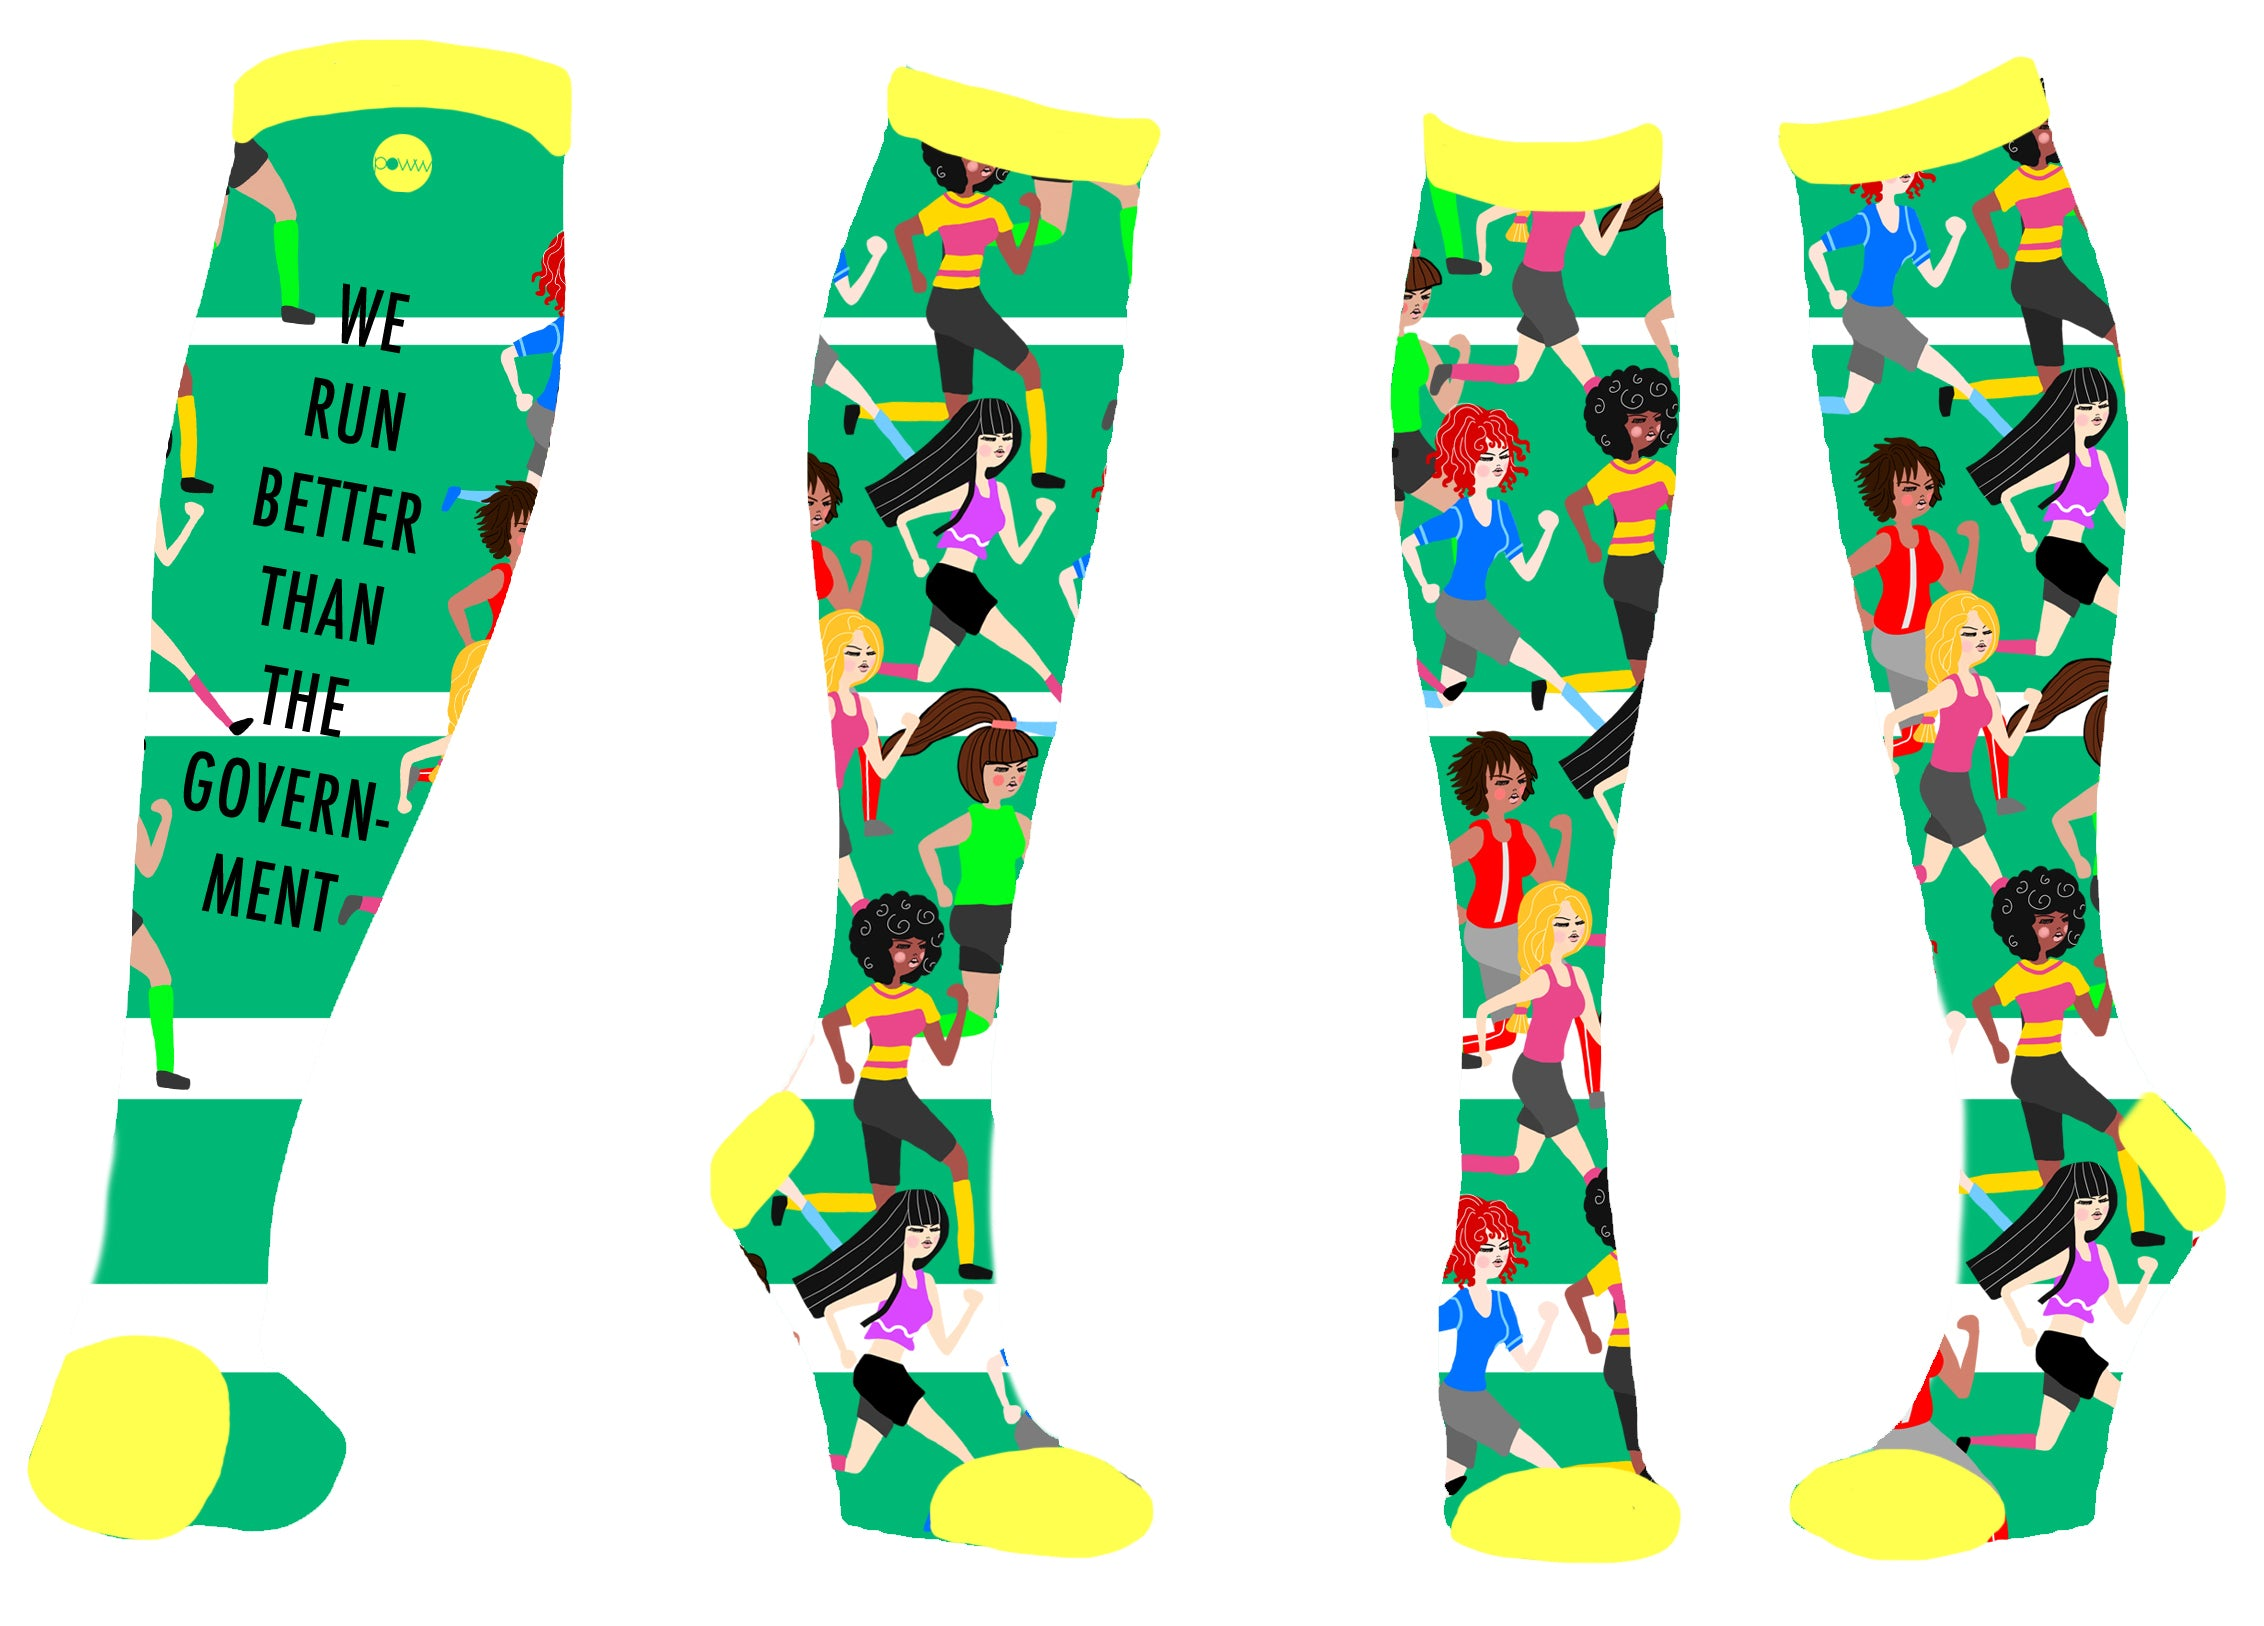 Power Socks - We Run Better - Design Inspiration